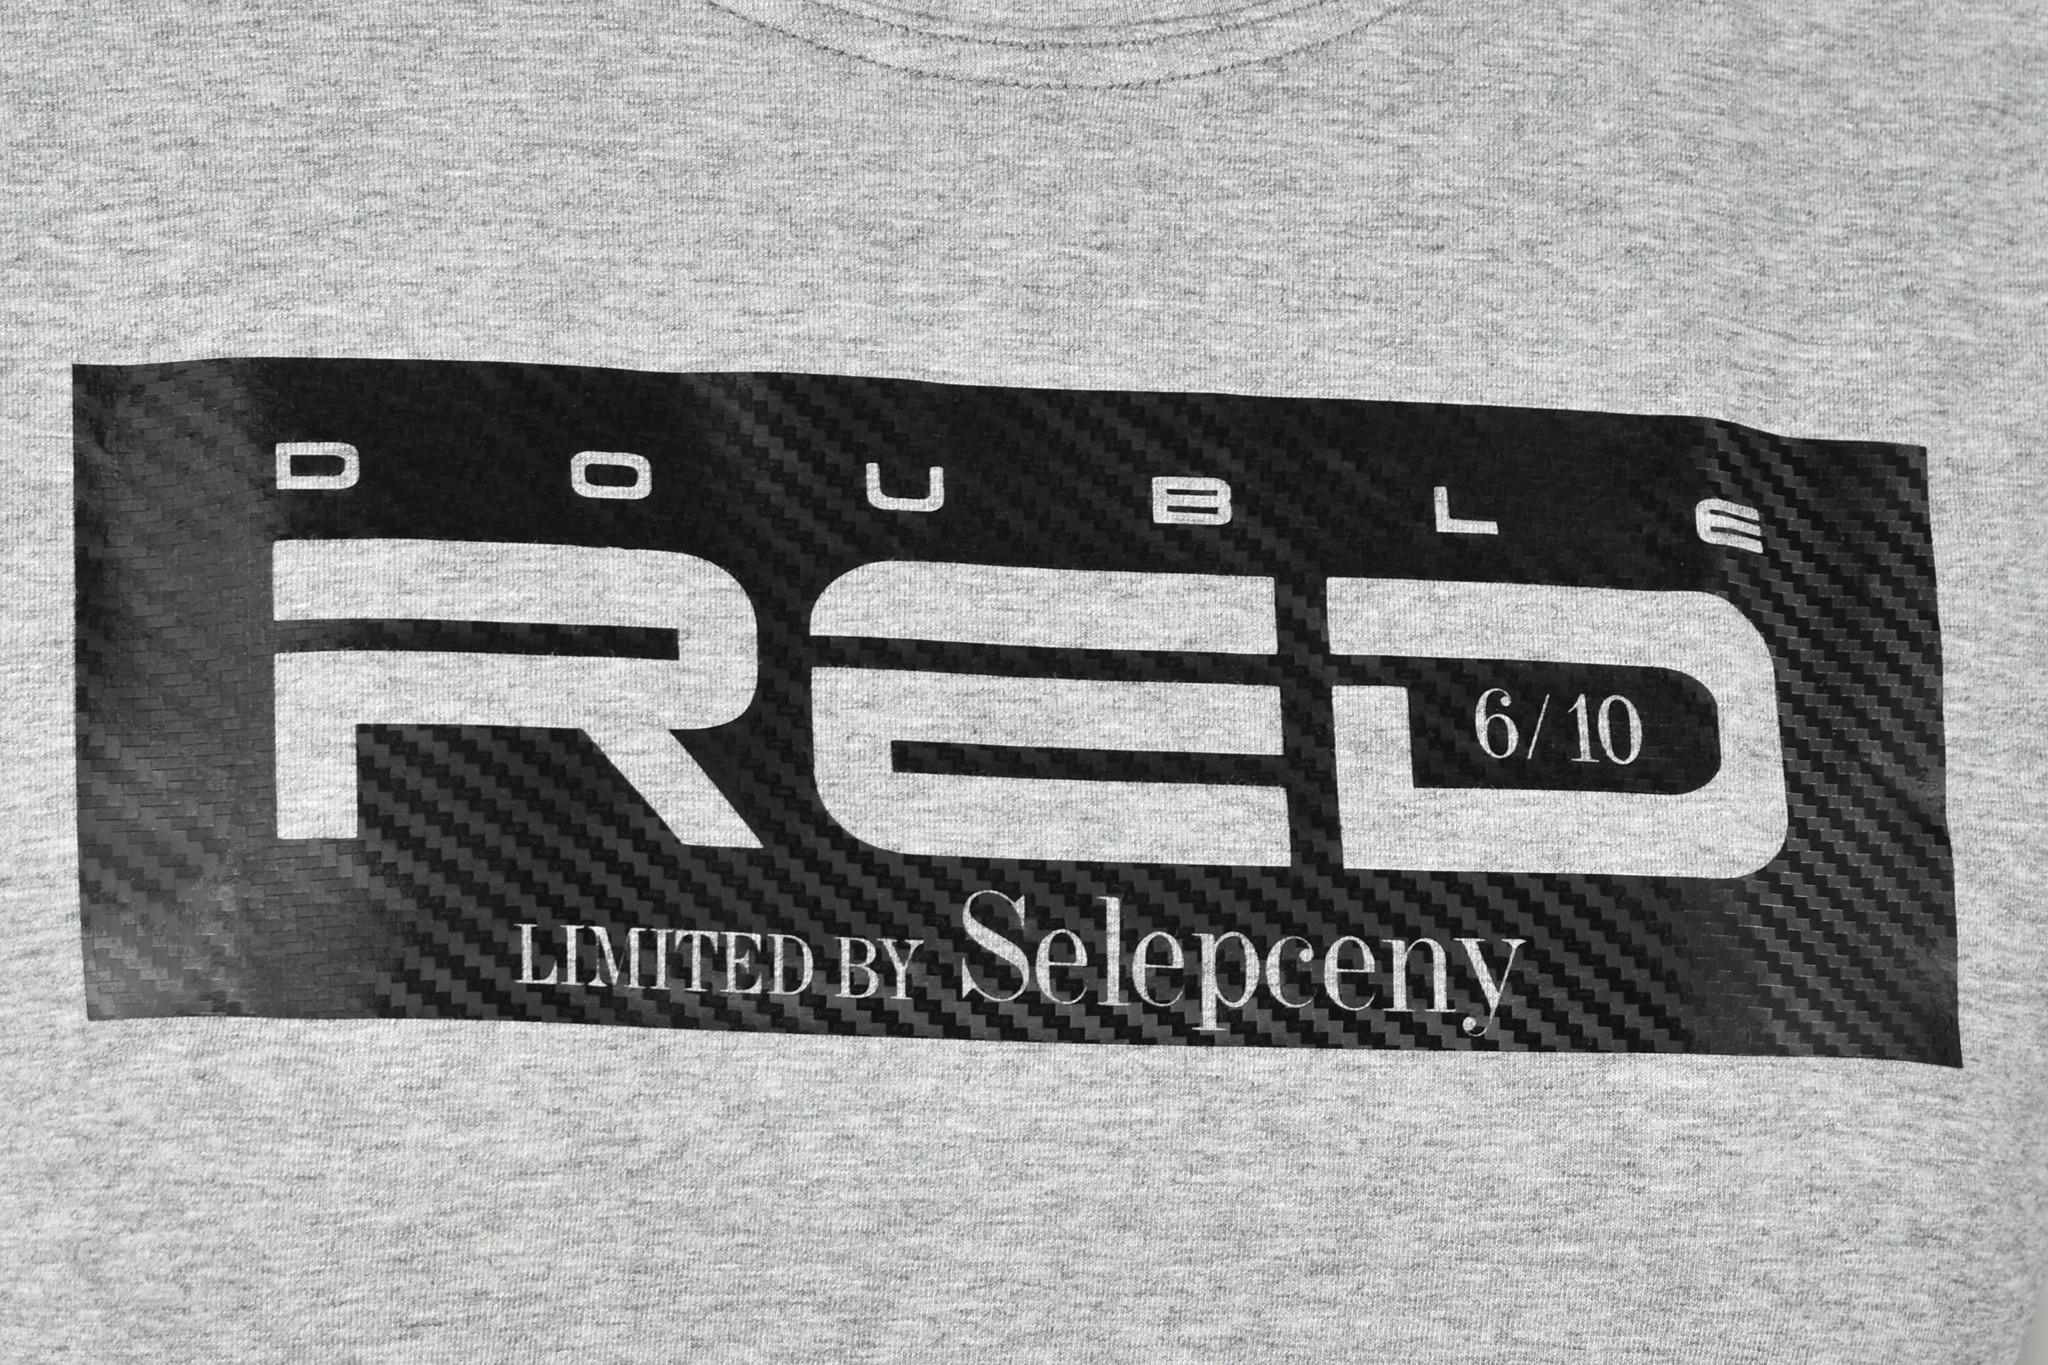 CARBON Limited by Selepceny T-shirt Grey